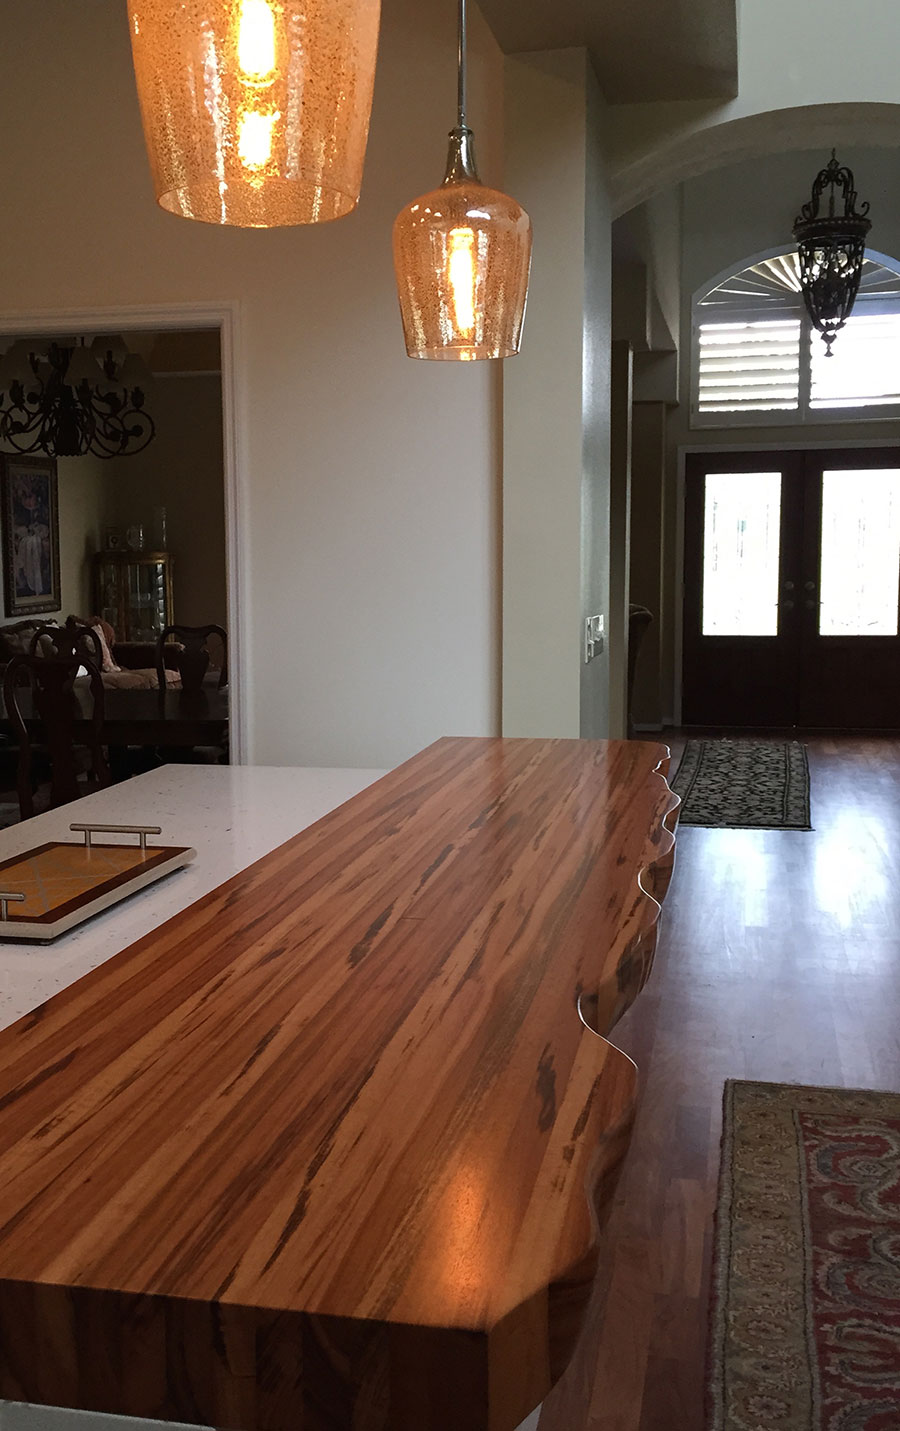 Faux Live Edge Tigerwood Countertop Customer Review